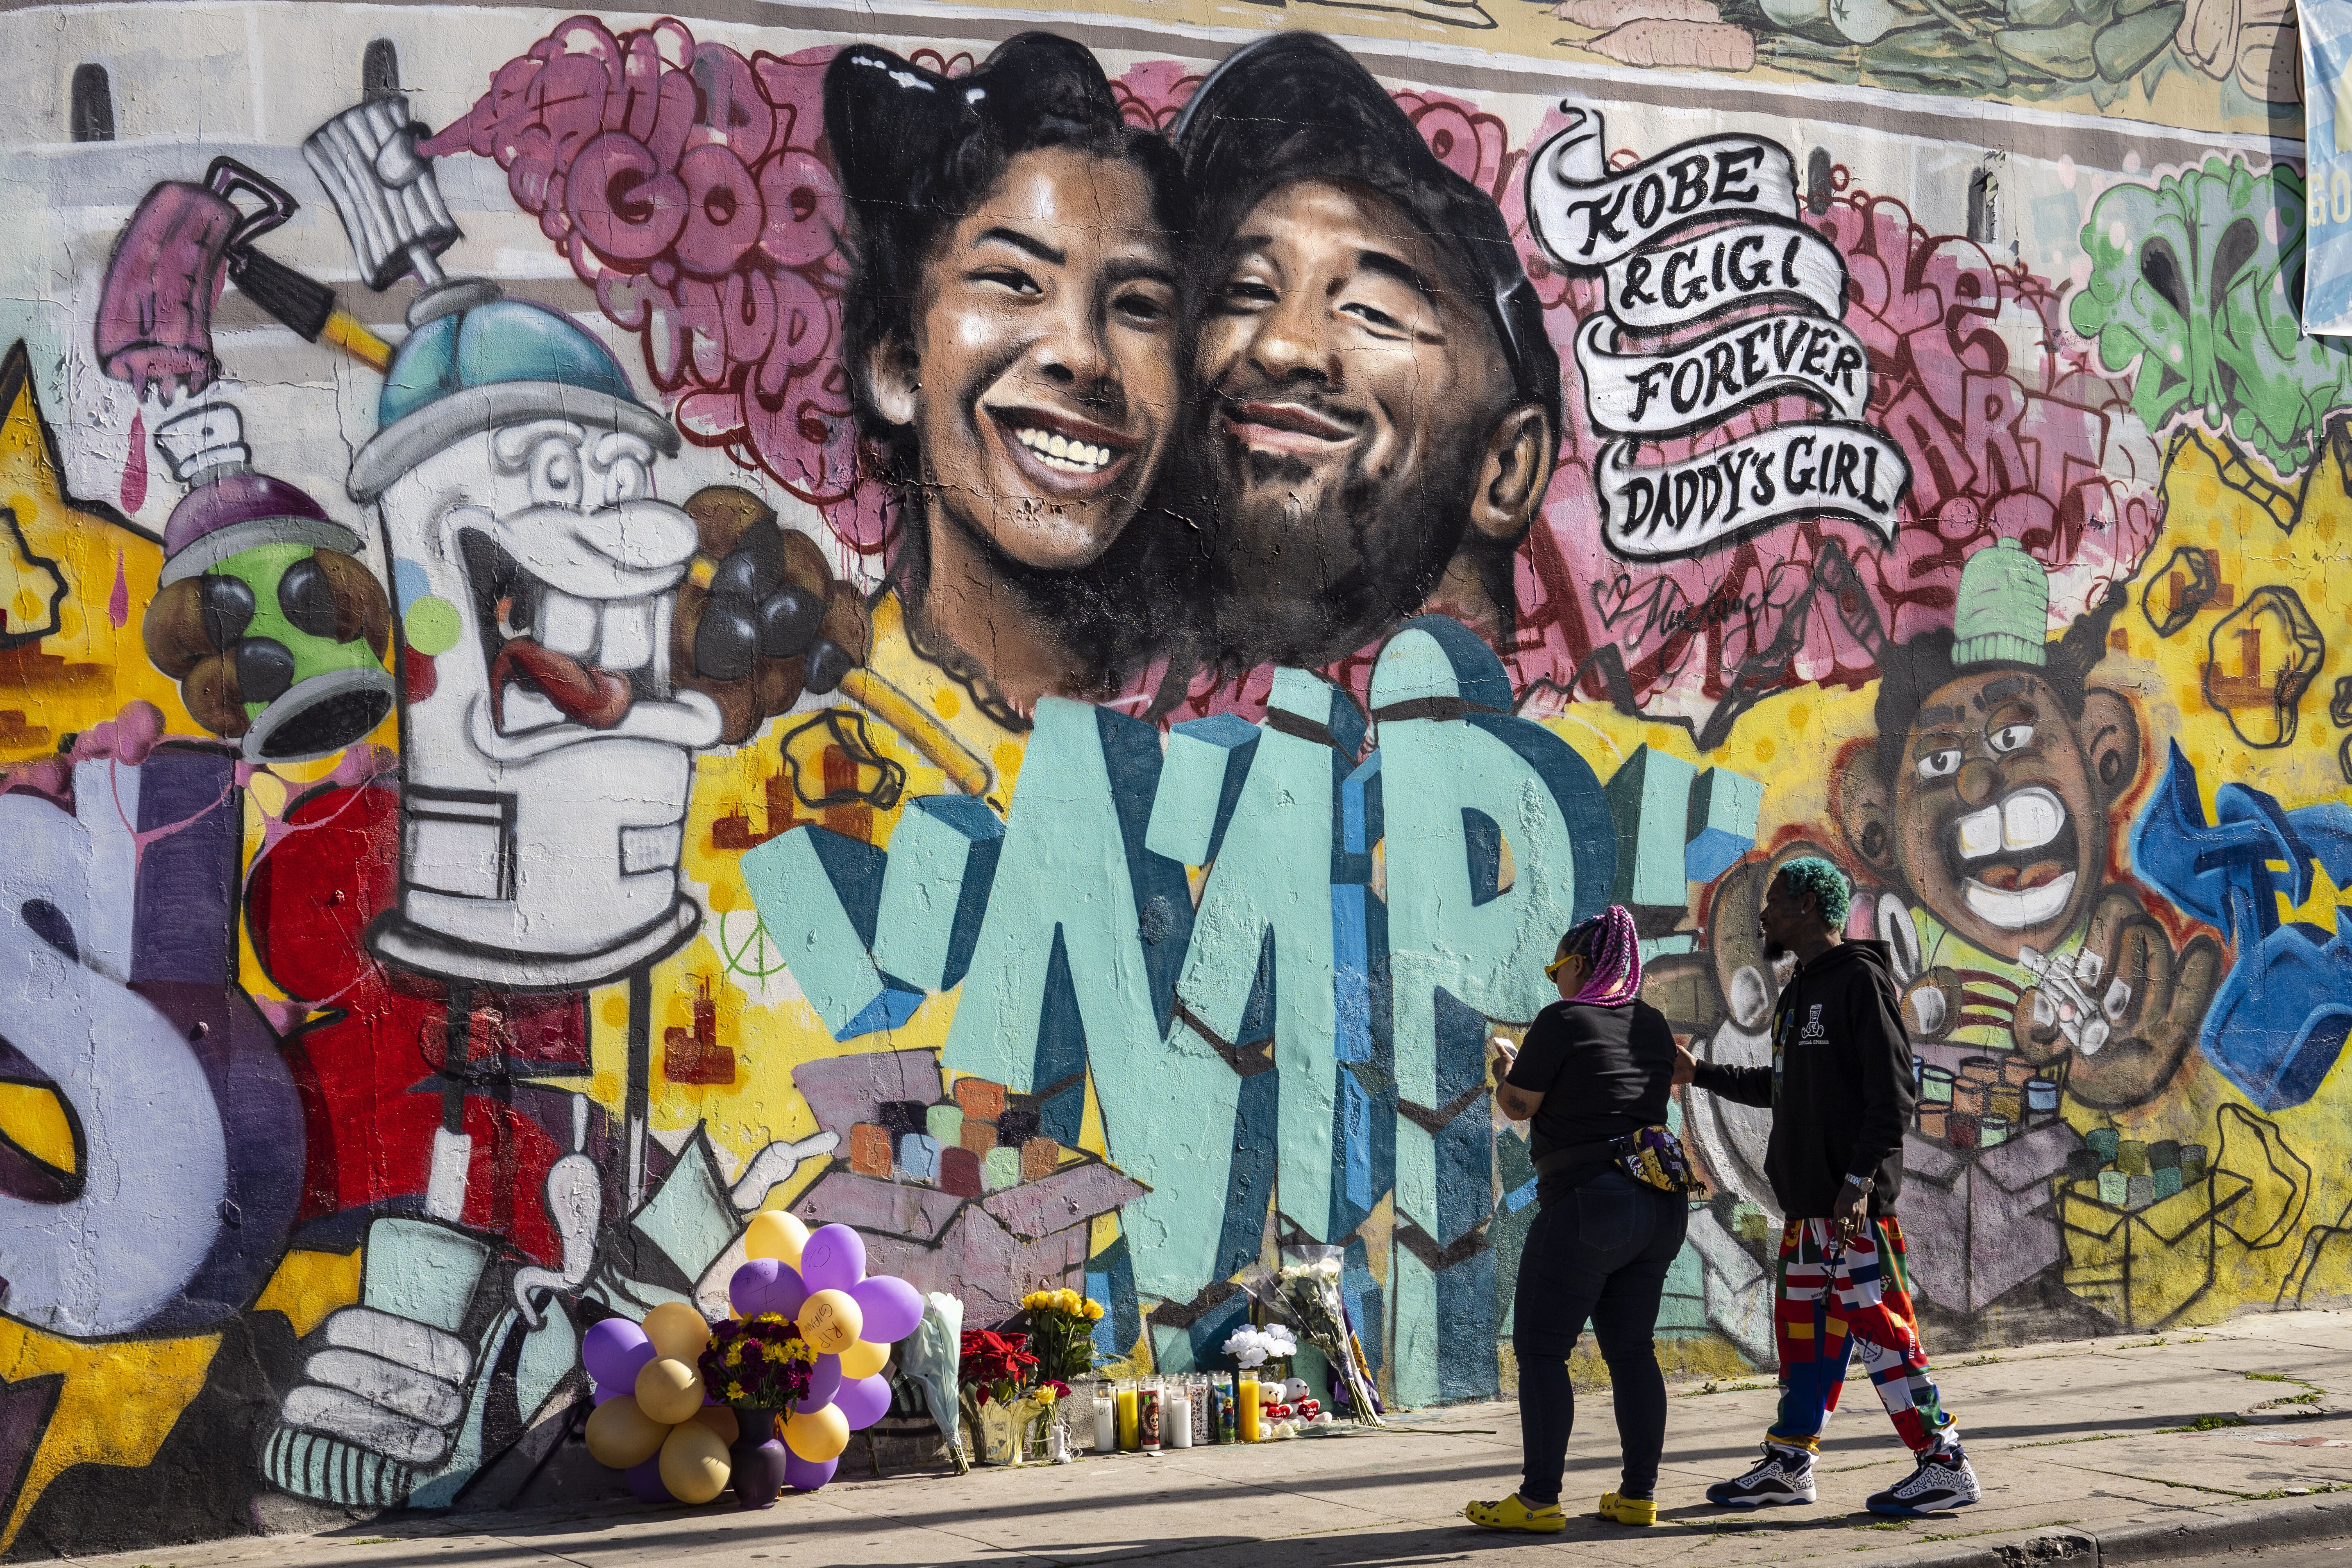 A mural by the artists Muck Rock and Mr79lts paying tribute to Kobe Bryant and his daughter Gianna Bryant/ Source; Getty Images